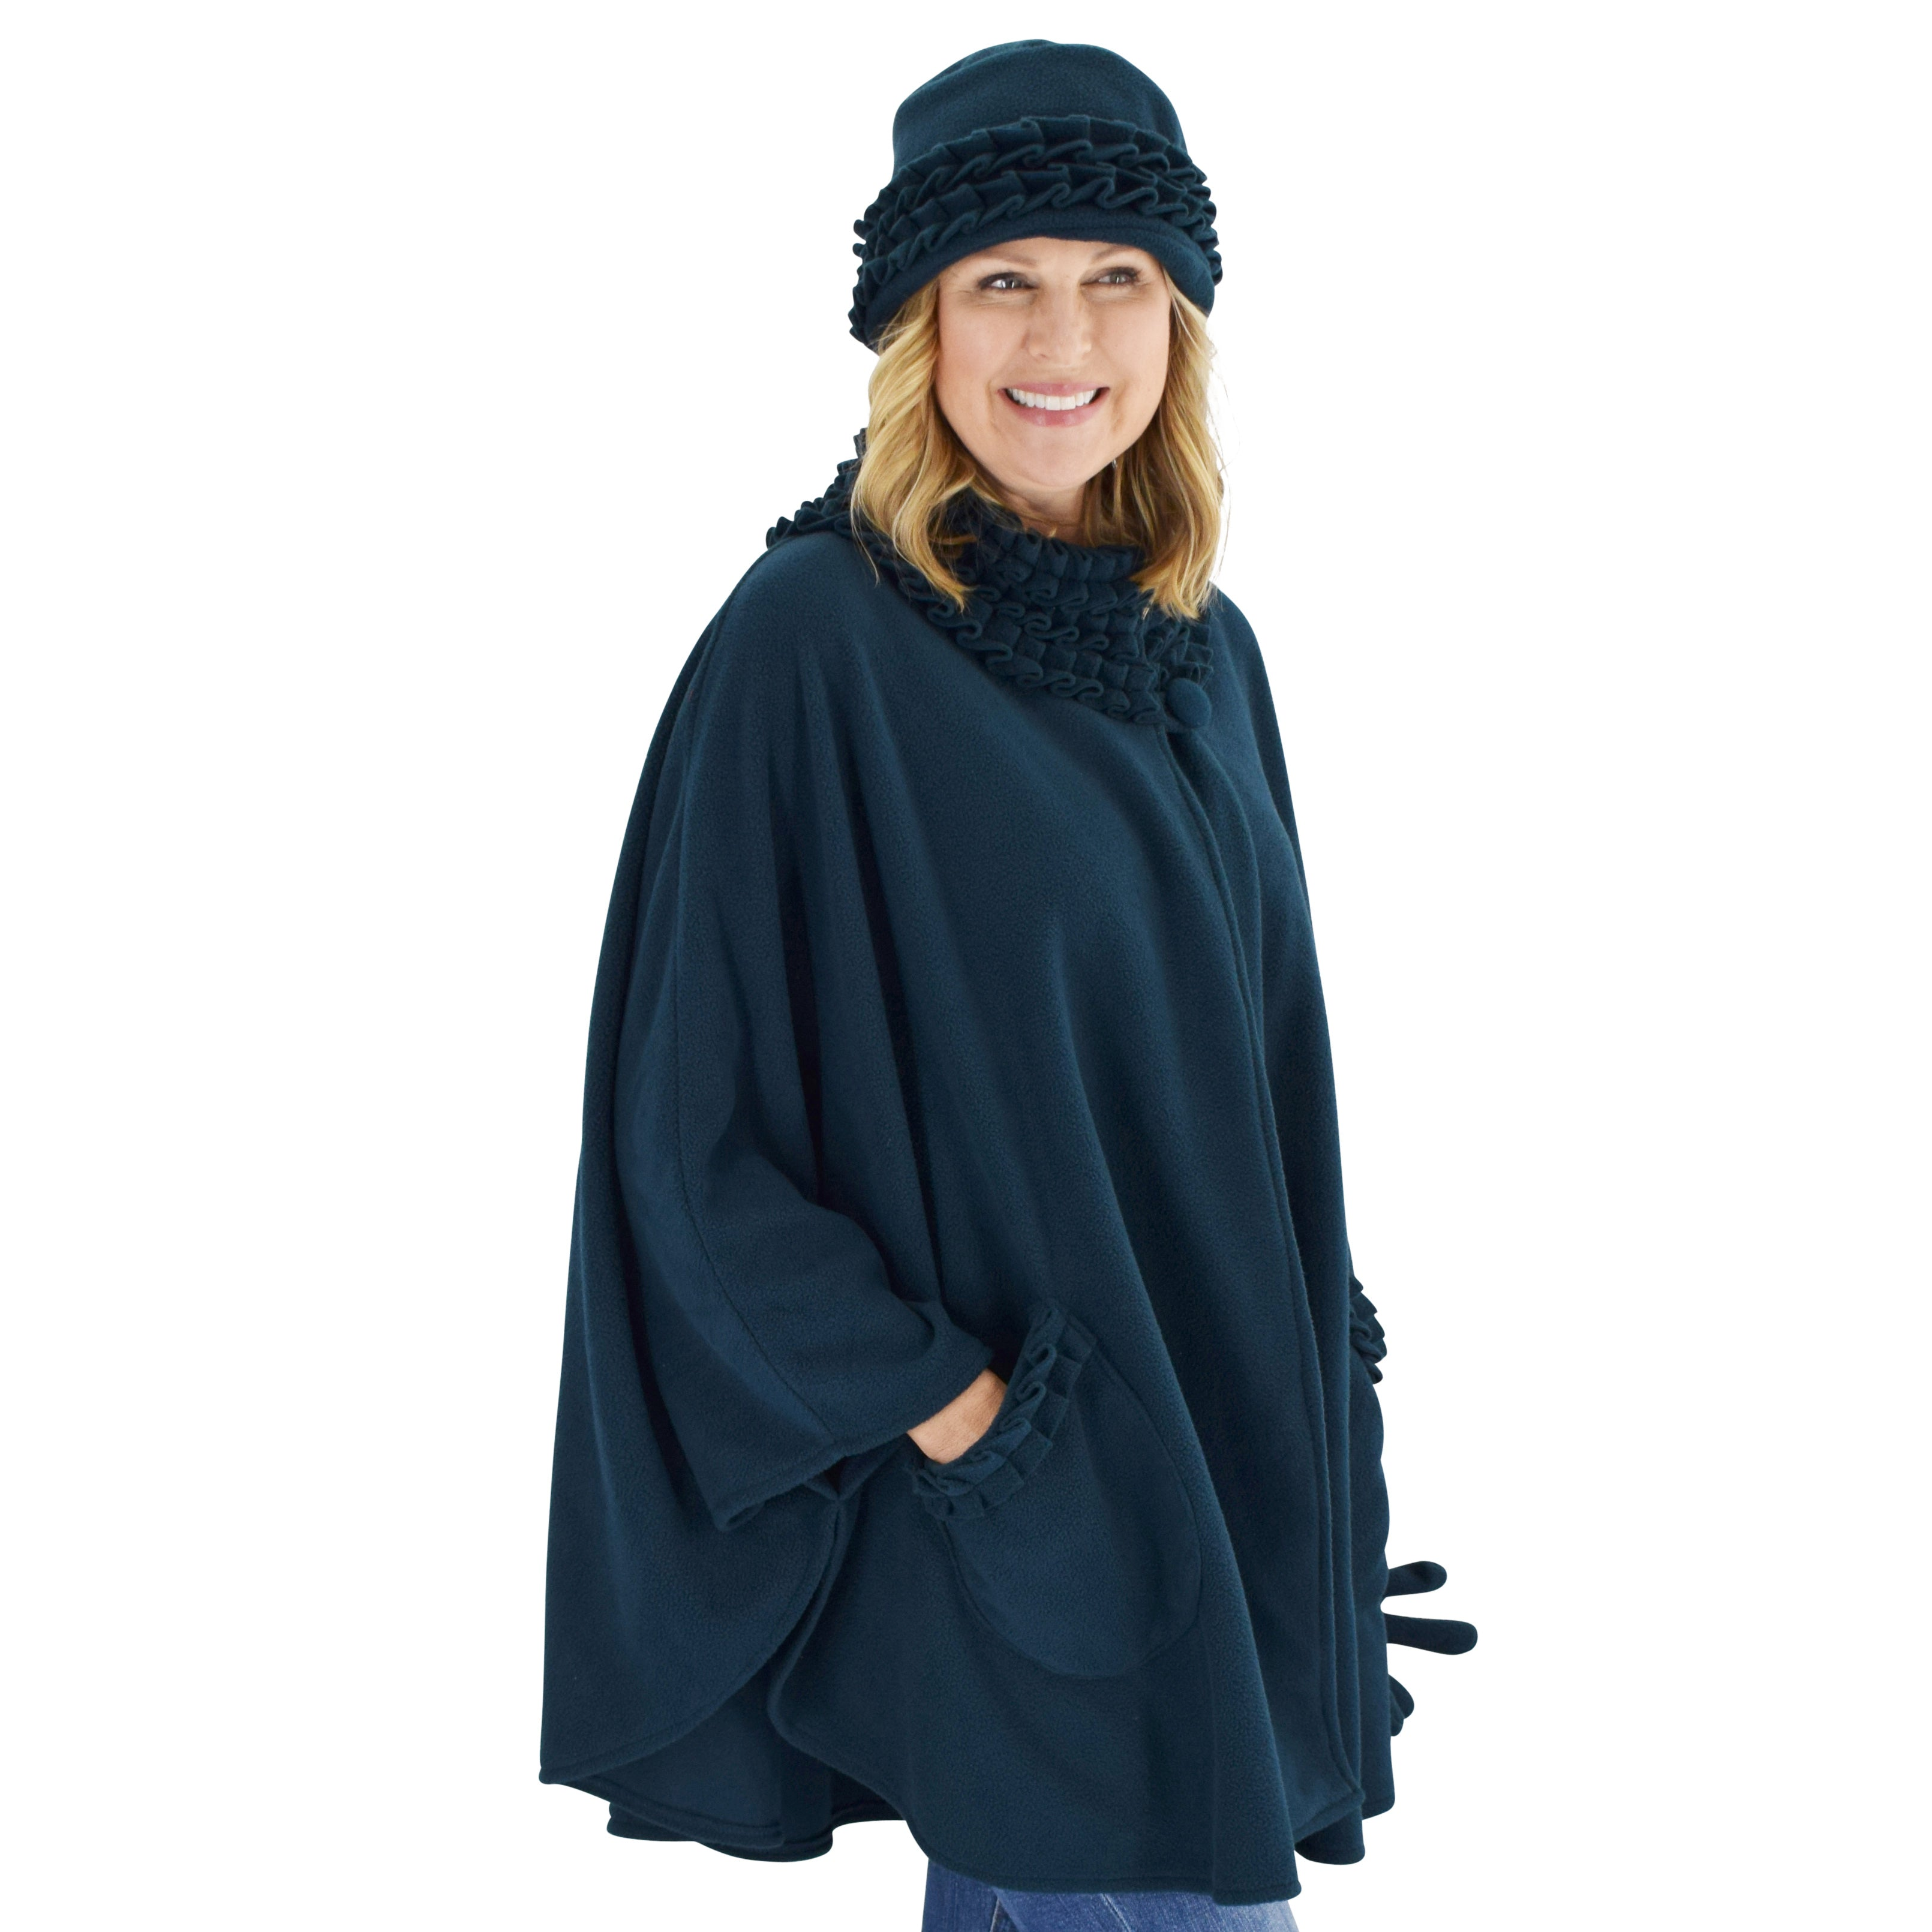 Le Moda Women's Ruffed collar Fleece Wrap with Matching Gloves and Hat - One Size Fits All at Linda Anderson. color_teal